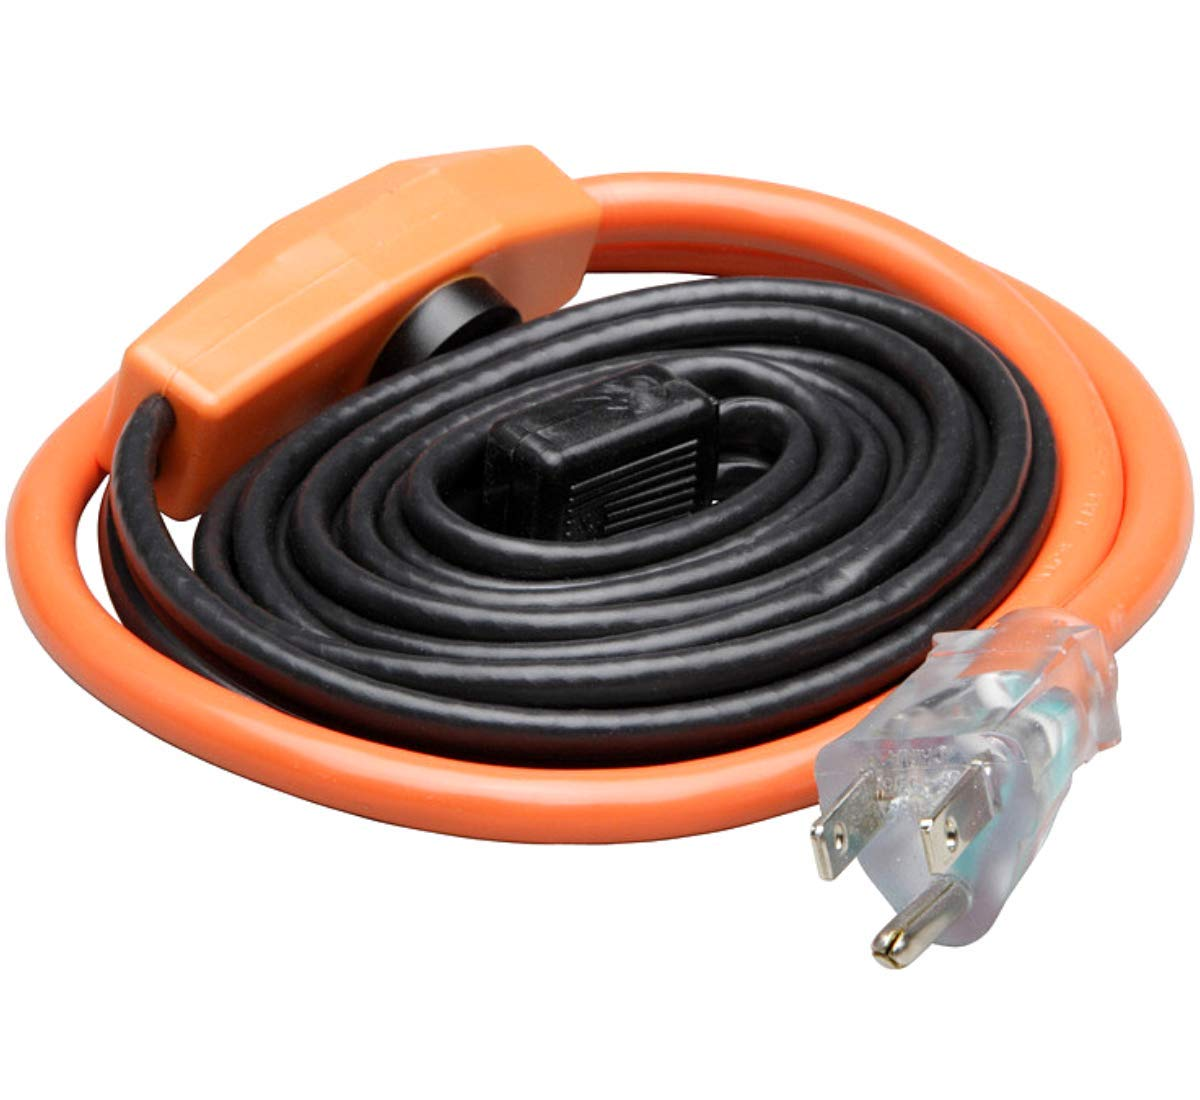 PHOENIX CABLES USA Pro Cold Weather Valve and Water Pipe Heating Cable/Multi-use for rigid plastic or metal pipes, preventing RV hose freezing or down a gutter downspout (3 Feet)